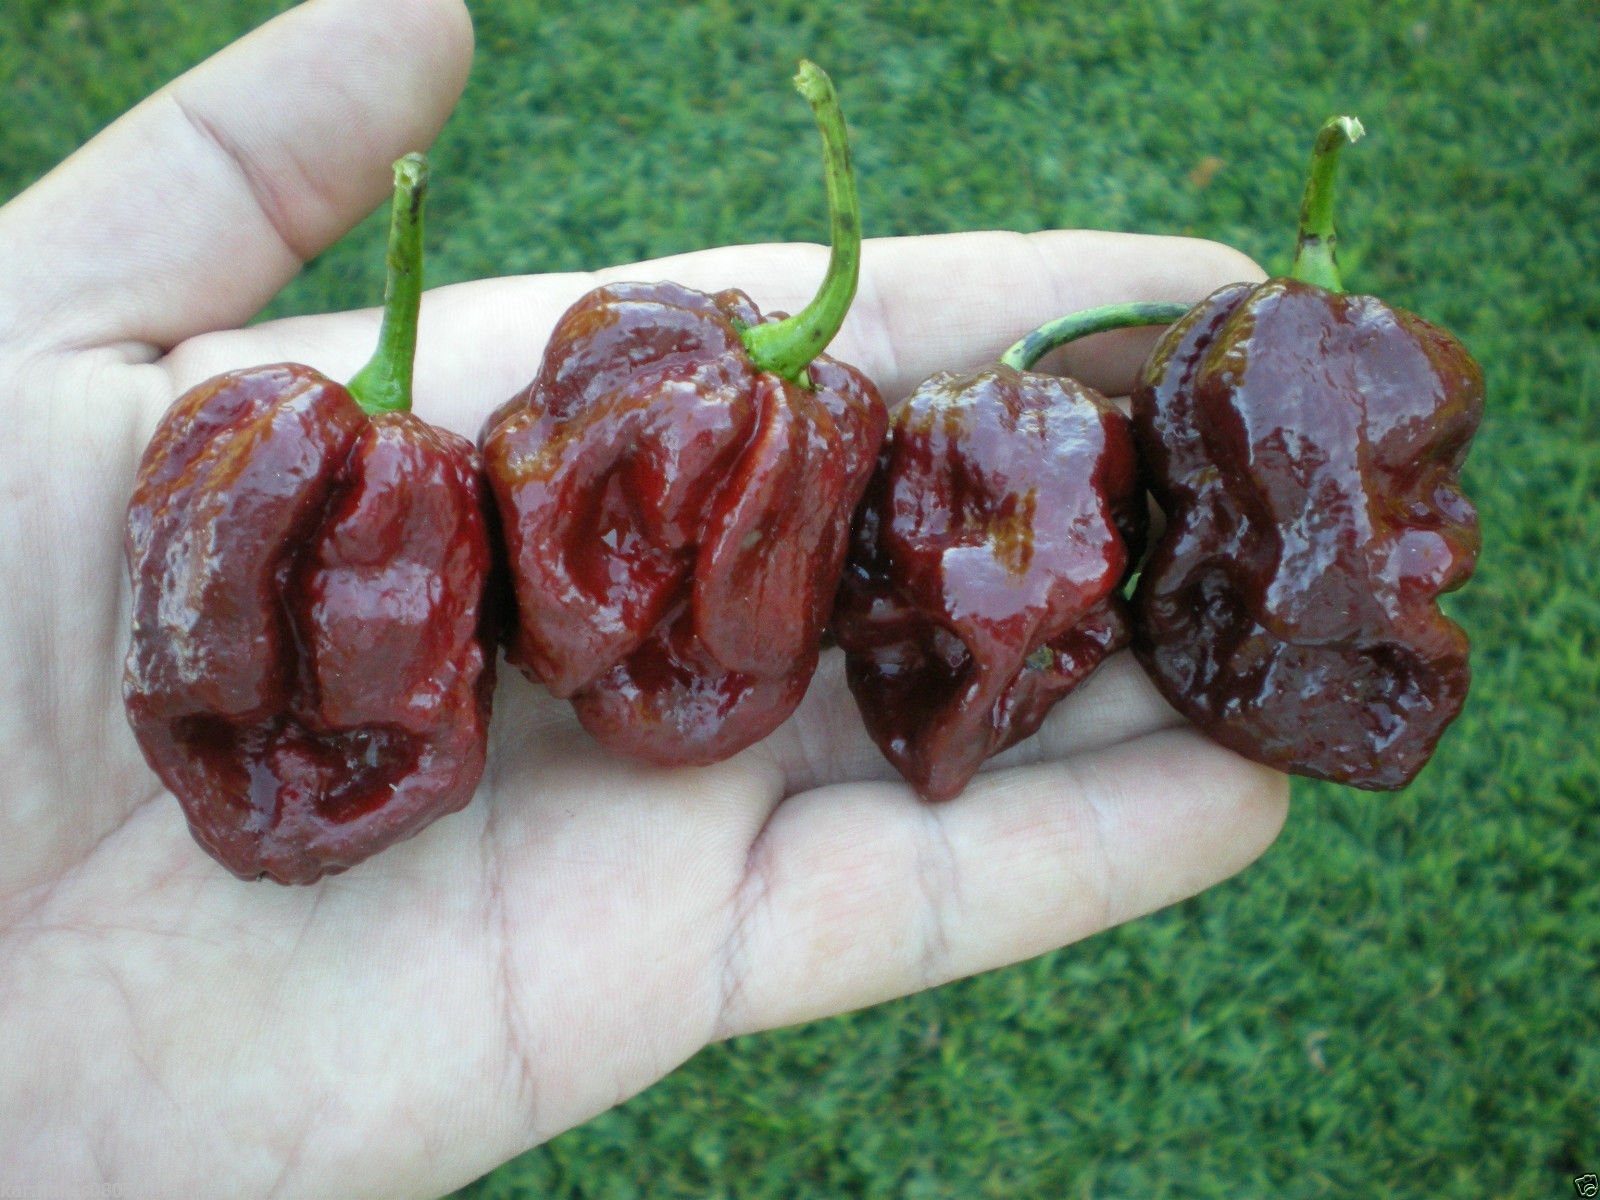 (1000) Trinidad 7 Pot (7-Pod) DOUGLAH Pepper SeedsWHOLESALE